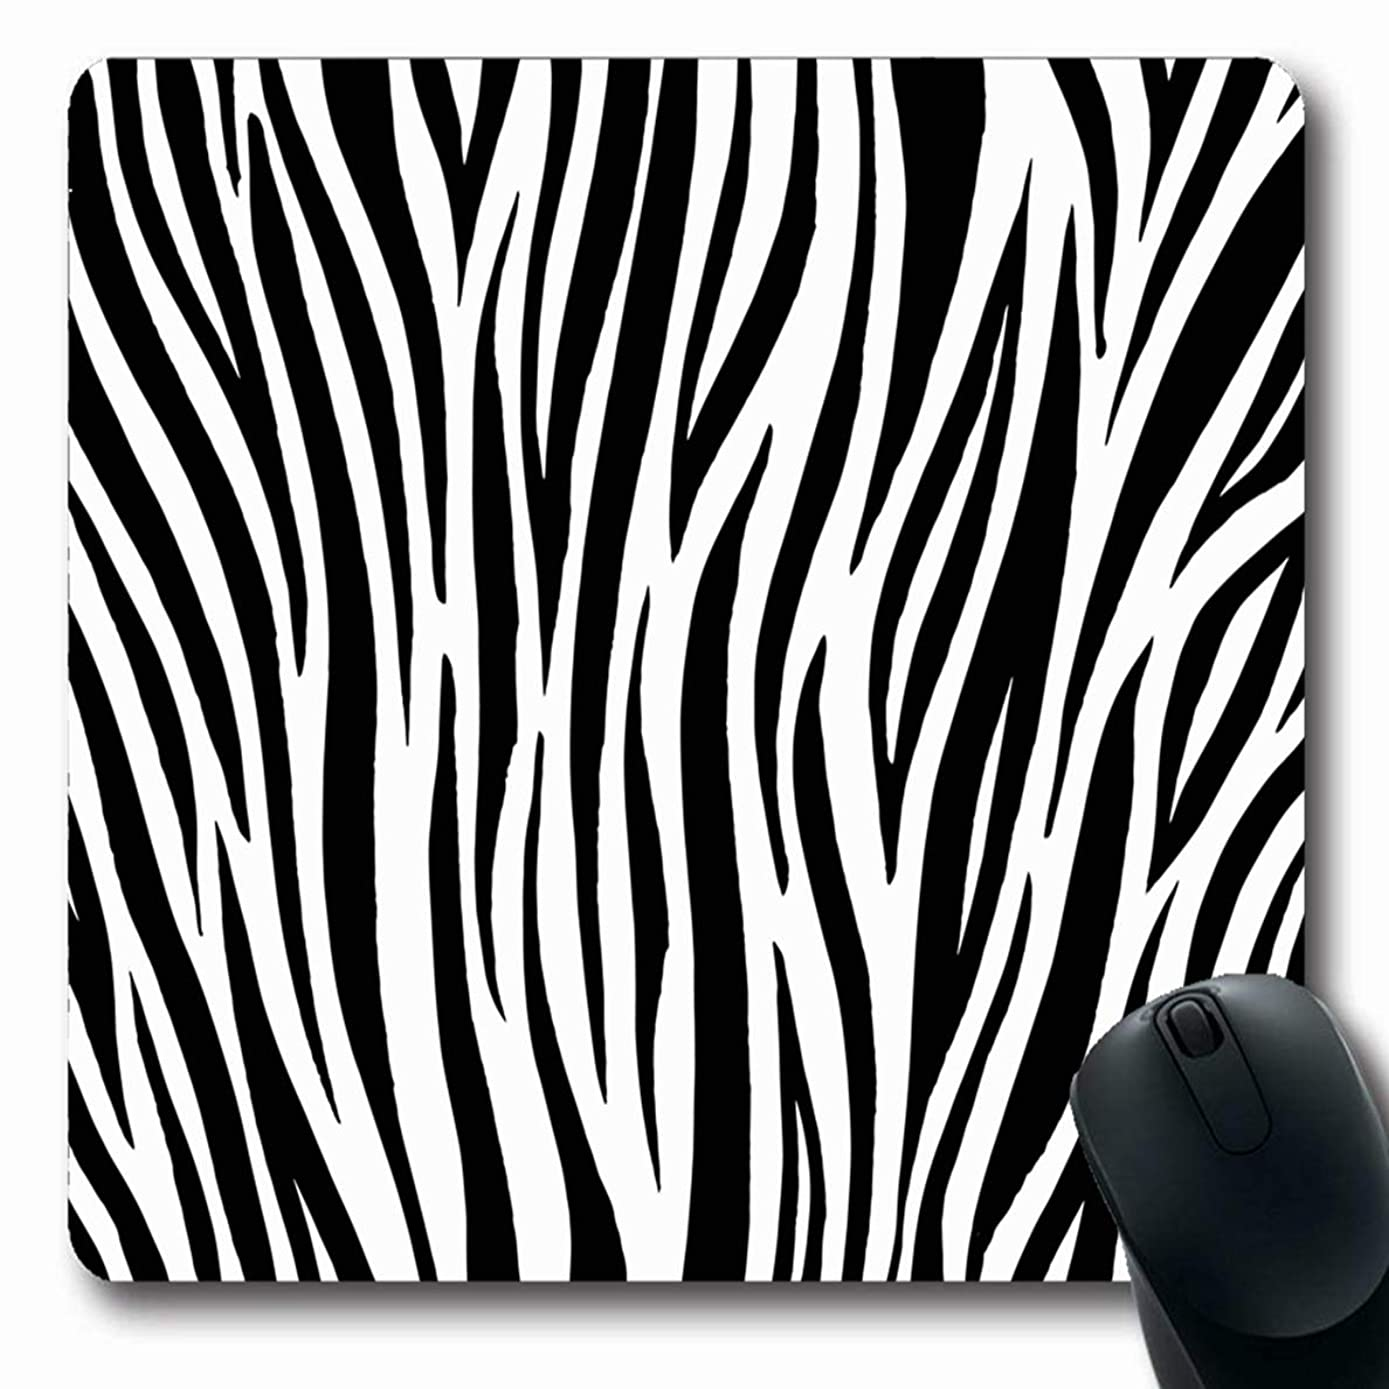 Ahawoso Mousepad Oblong 7.9x9.8 Inches Pattern Zebra Skin Tiger Stripes Exotic Zoo Sketch Detail Fur Glamour Design Lines Office Computer Laptop Notebook Mouse Pad,Non-Slip Rubber